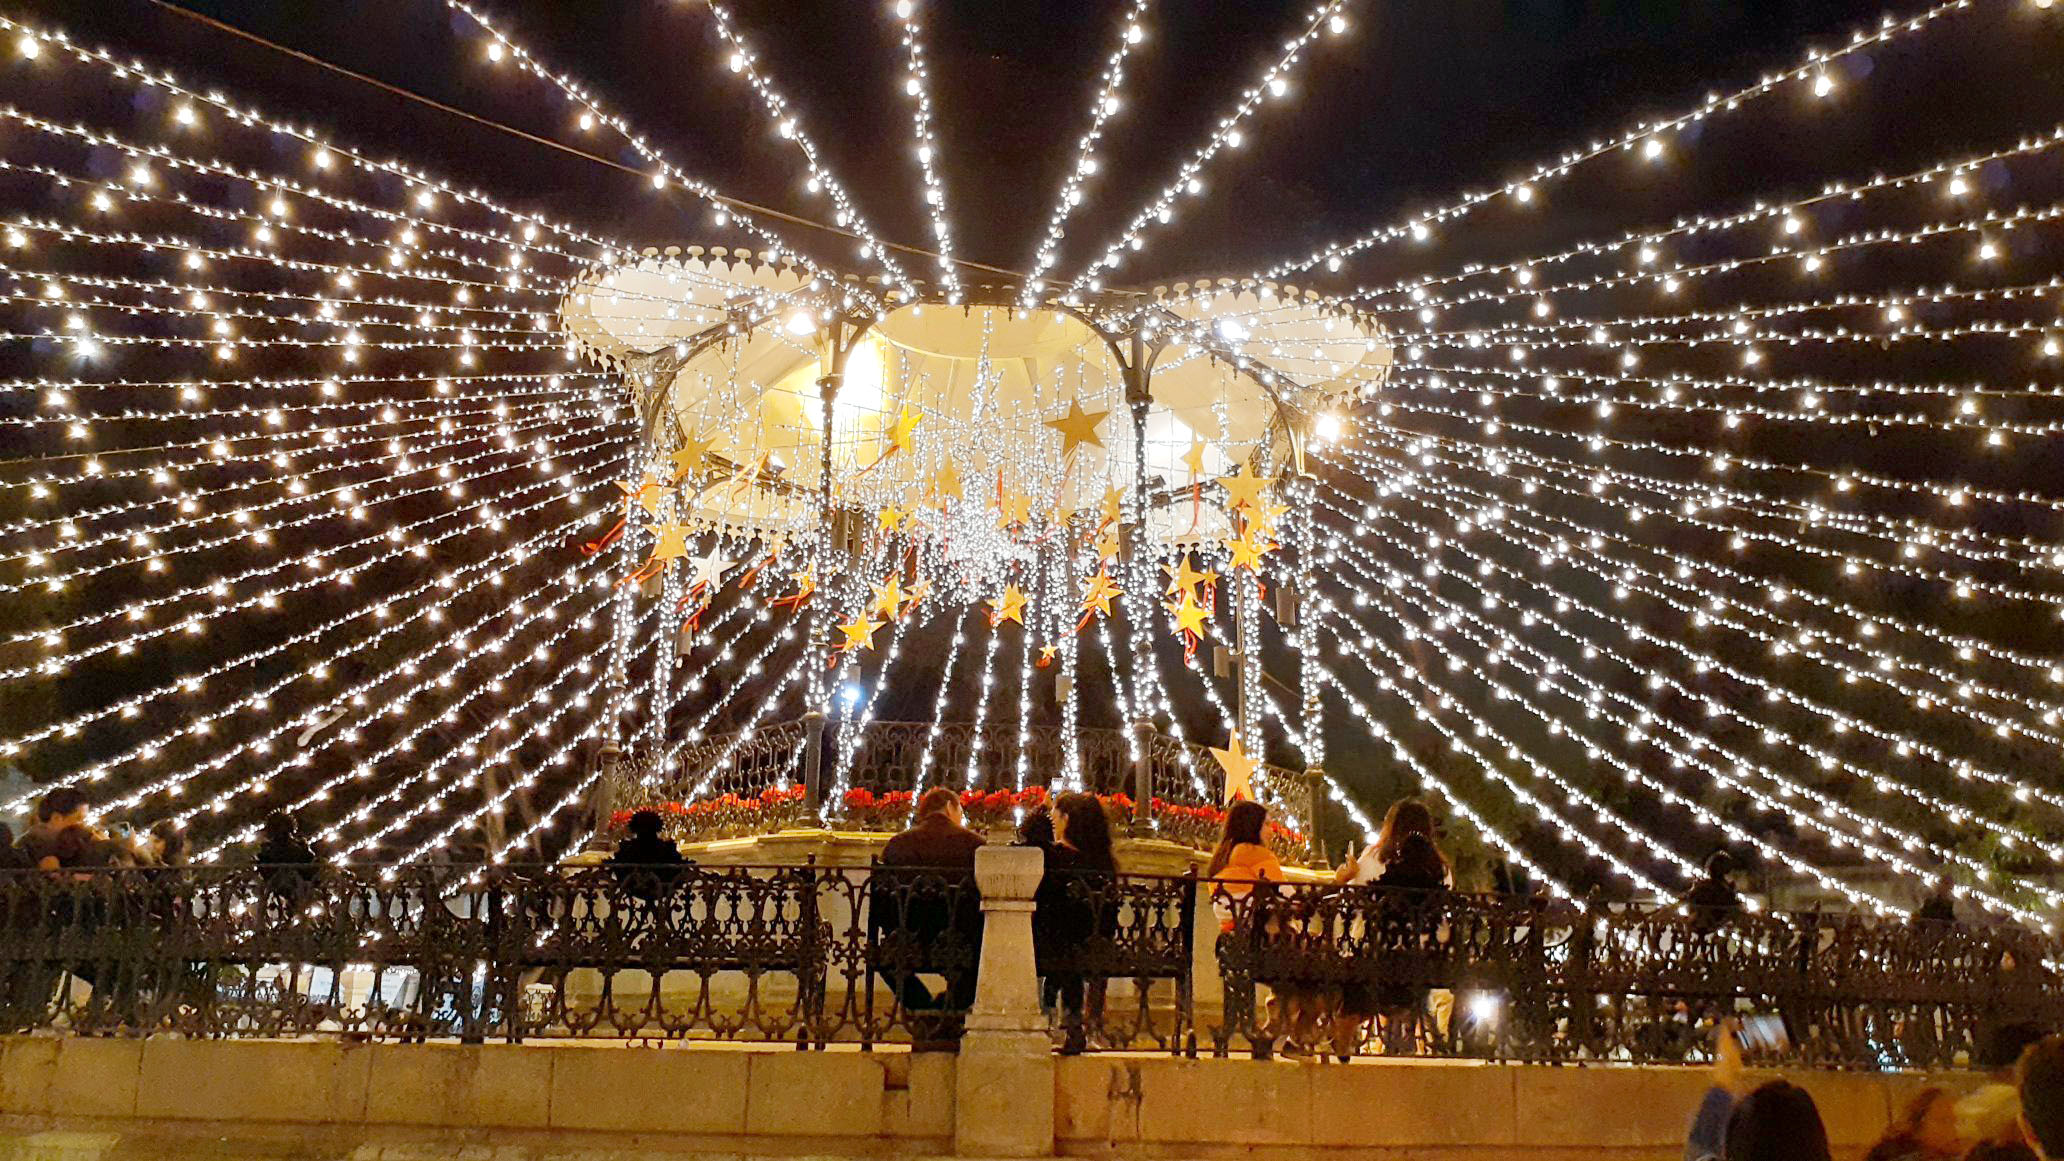 La capital de Oaxaca se viste de luz y color por fiestas decembrinas